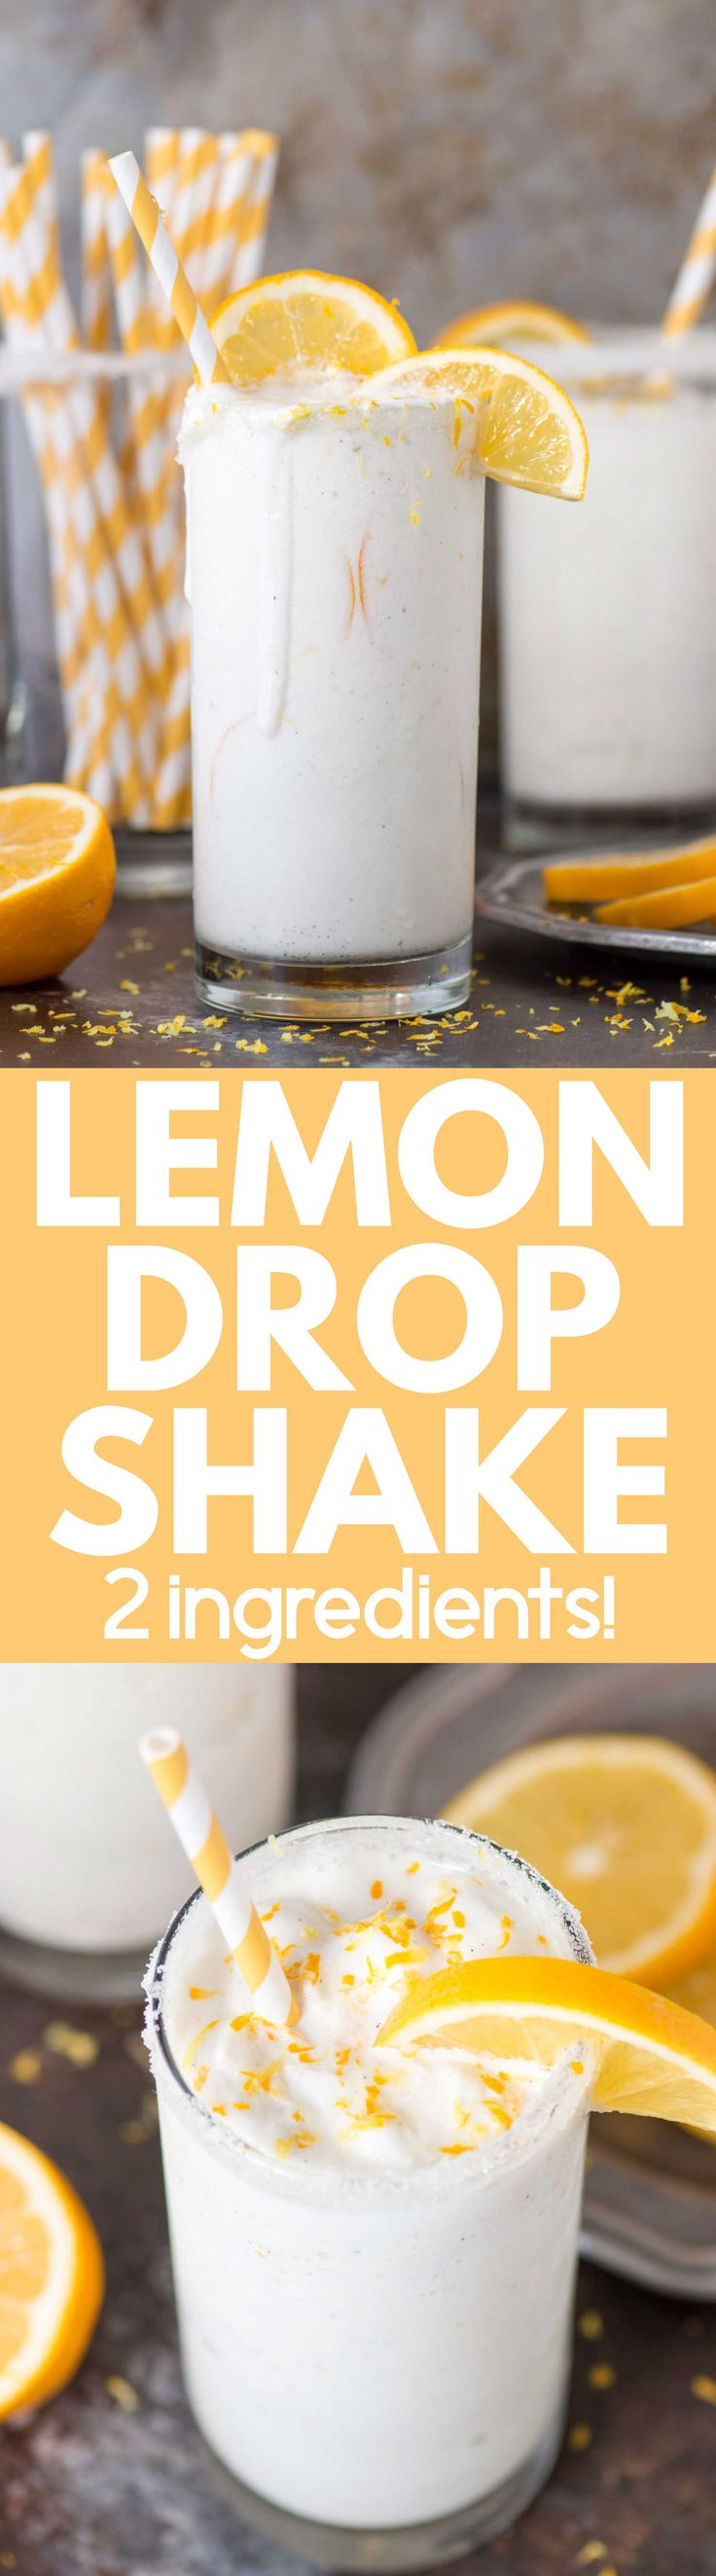 2 ingredient LEMON DROP SHAKE! Vanilla ice cream and lemonade in a blender - a smooth, creamy drink you'll want all spring and summer!